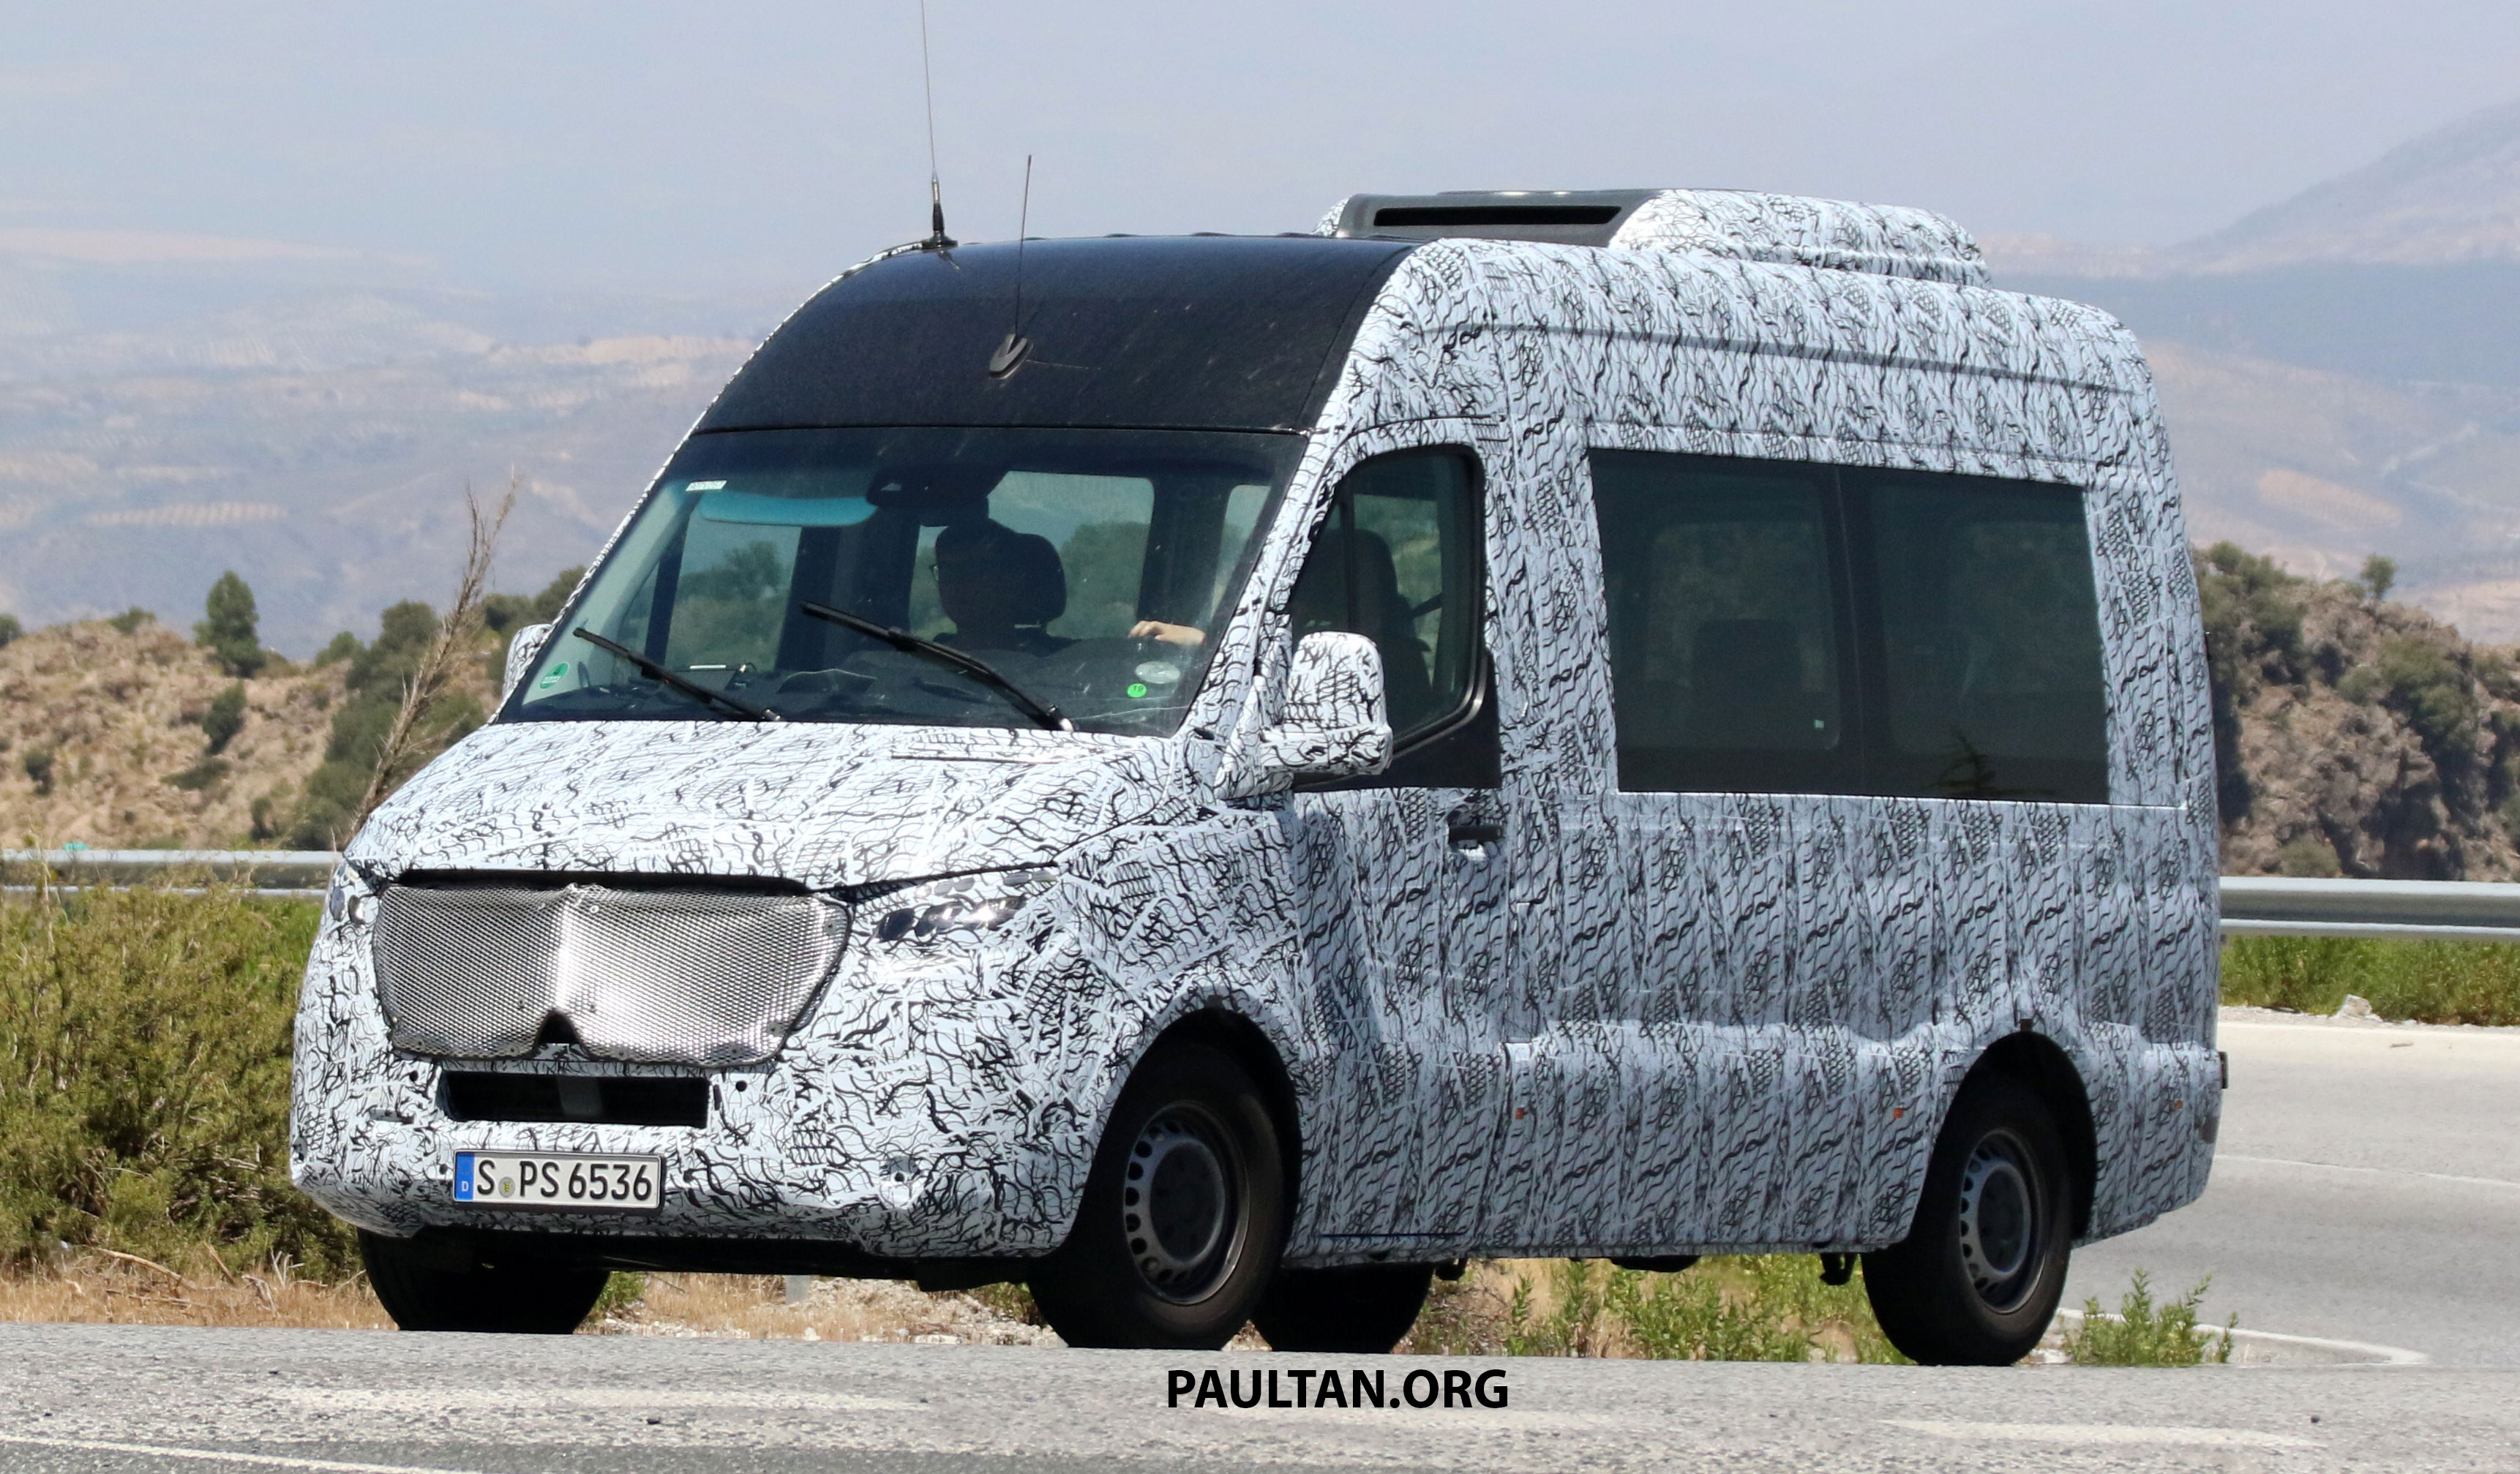 spyshot mercedes benz sprinter 2018 van yang akan diperkenal dengan varian janaan kuasa elektrik. Black Bedroom Furniture Sets. Home Design Ideas